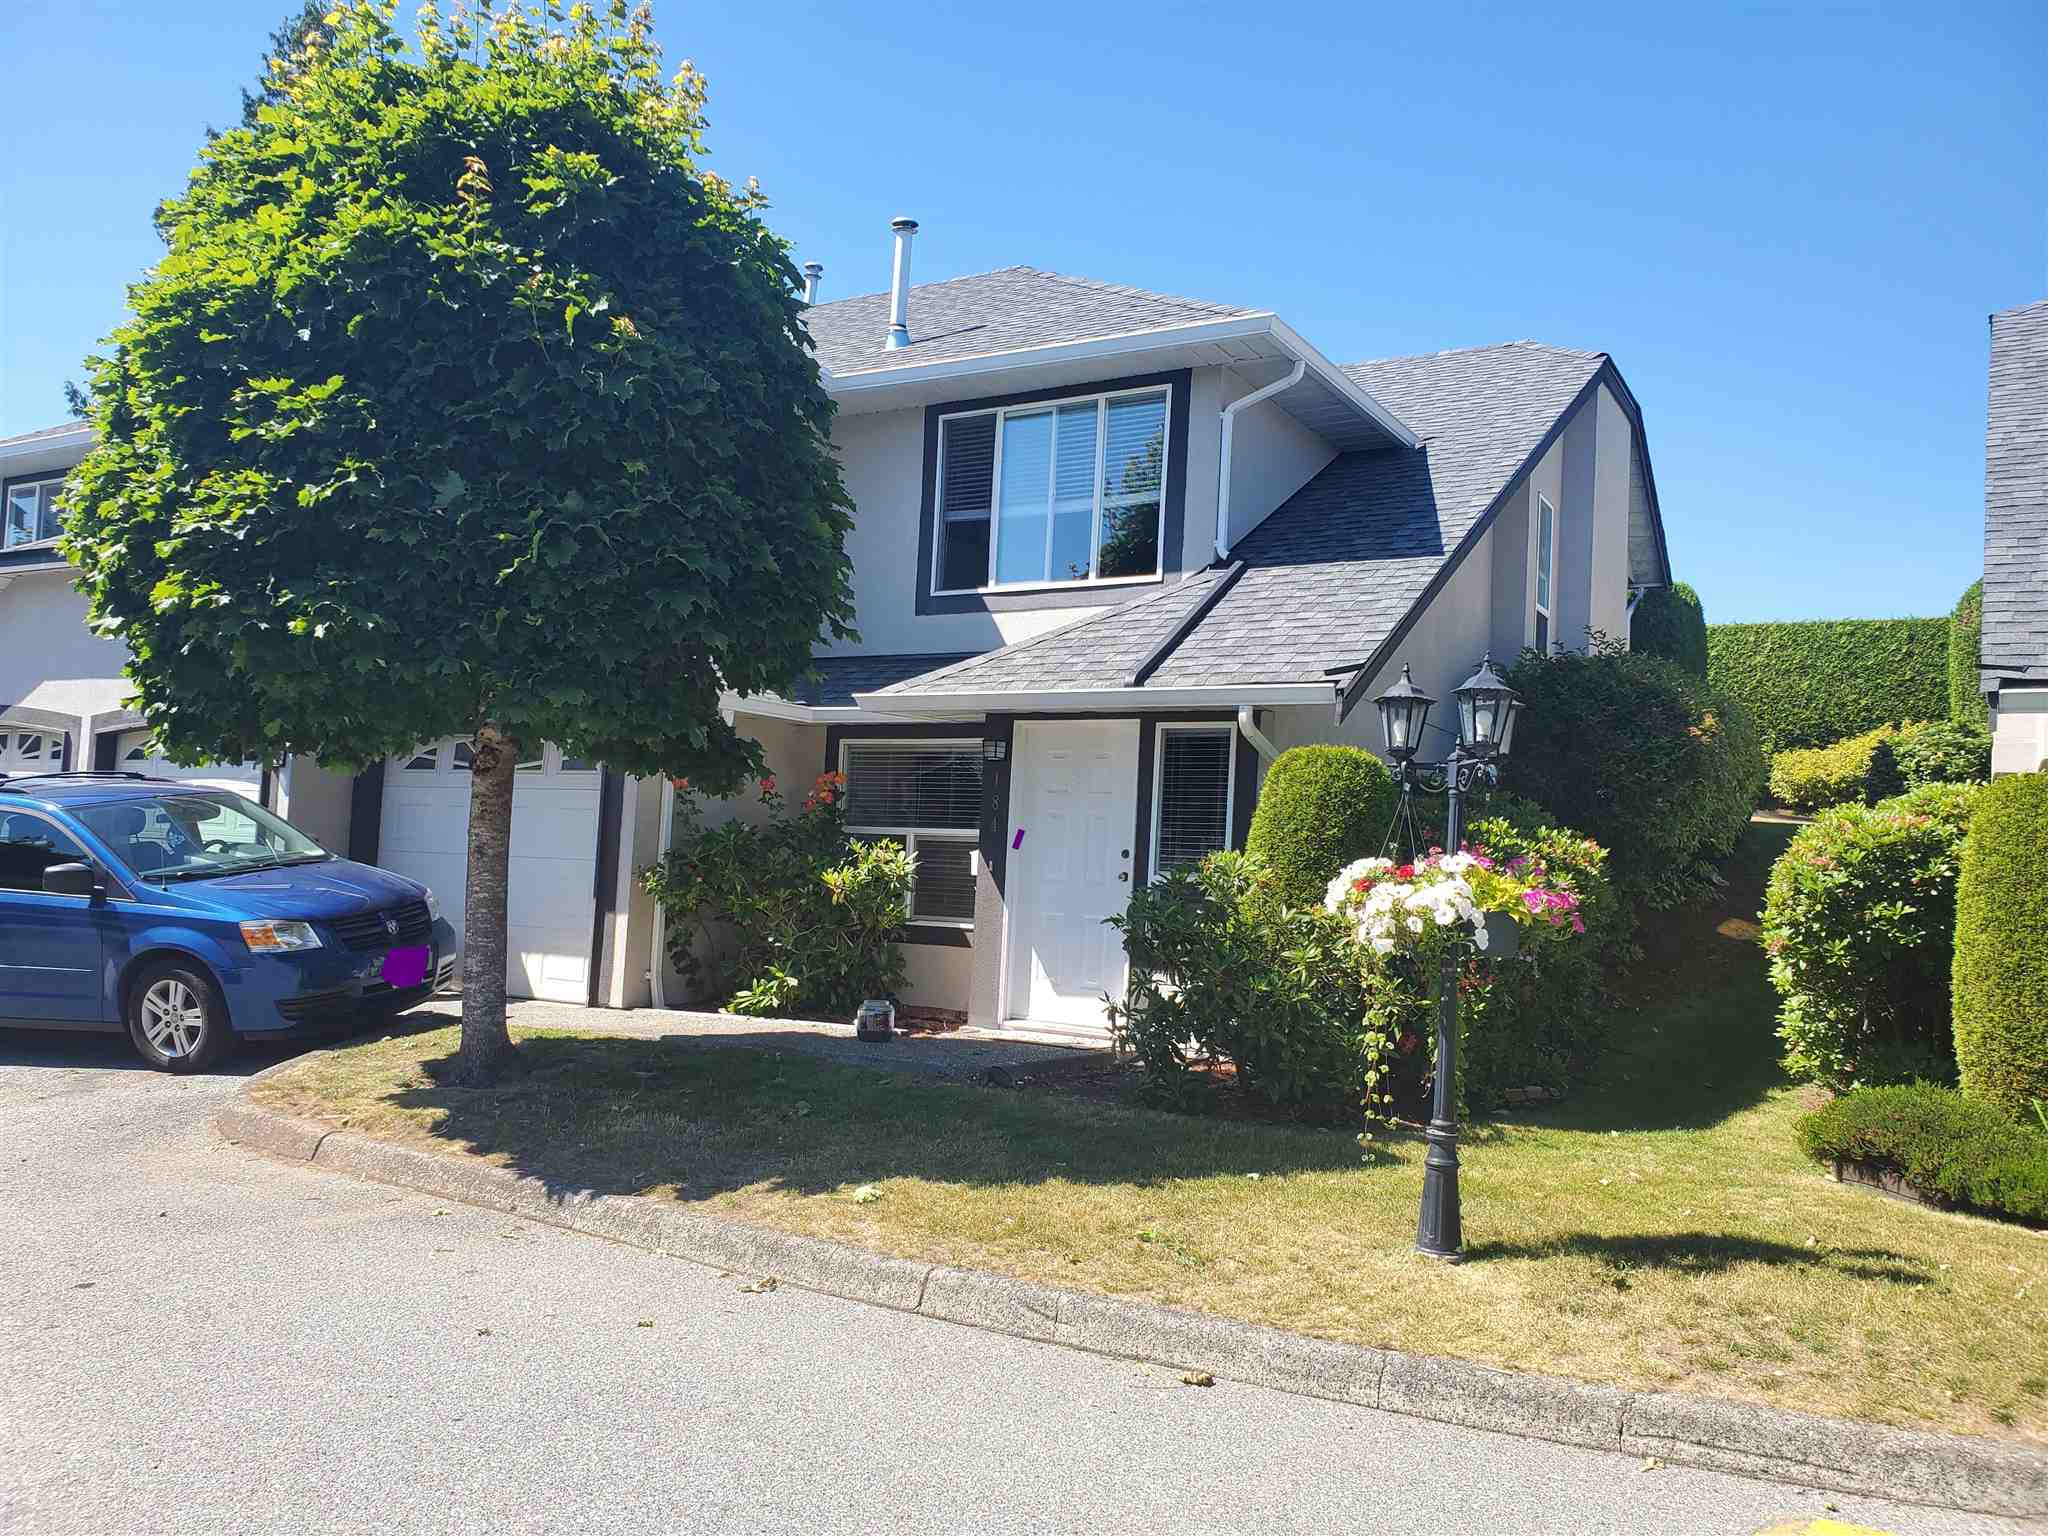 184 3160 TOWNLINE ROAD - Abbotsford West Townhouse for sale, 4 Bedrooms (R2594630) - #1